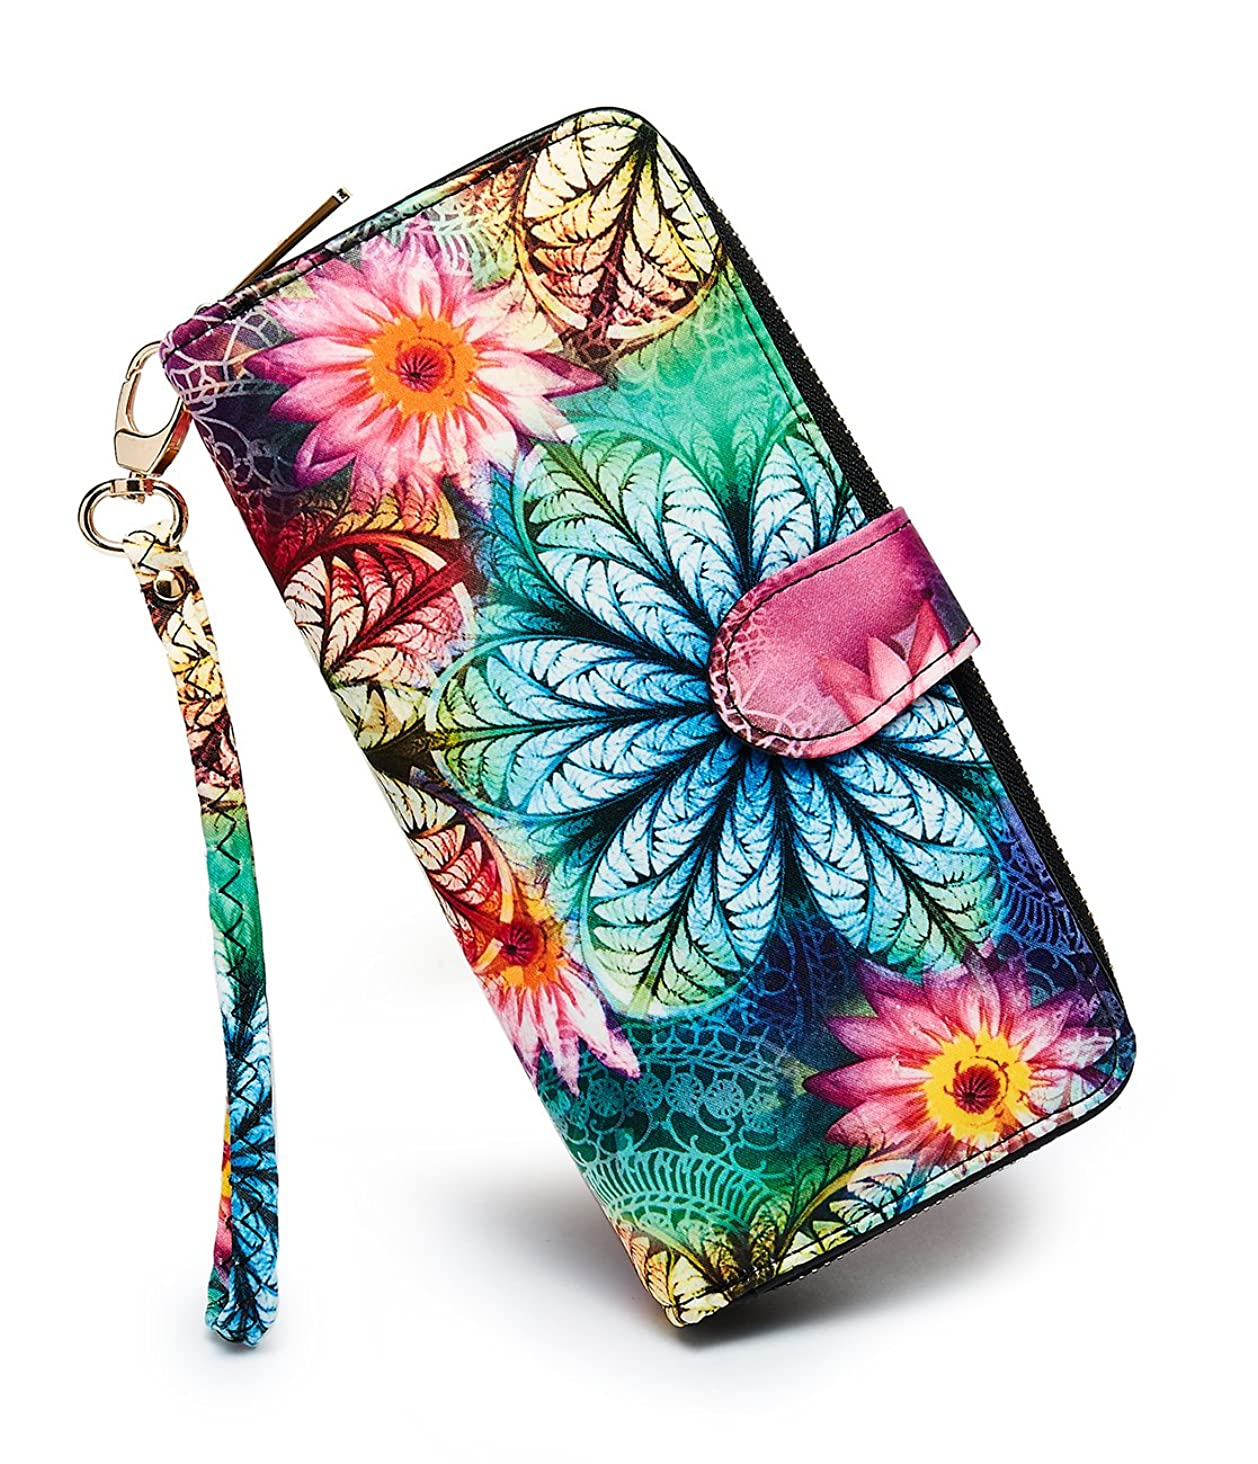 LOVESHE Women's New Design Bohemian Style Purse Clutch Bag Card Holder New Fashion Wristlets Wallets